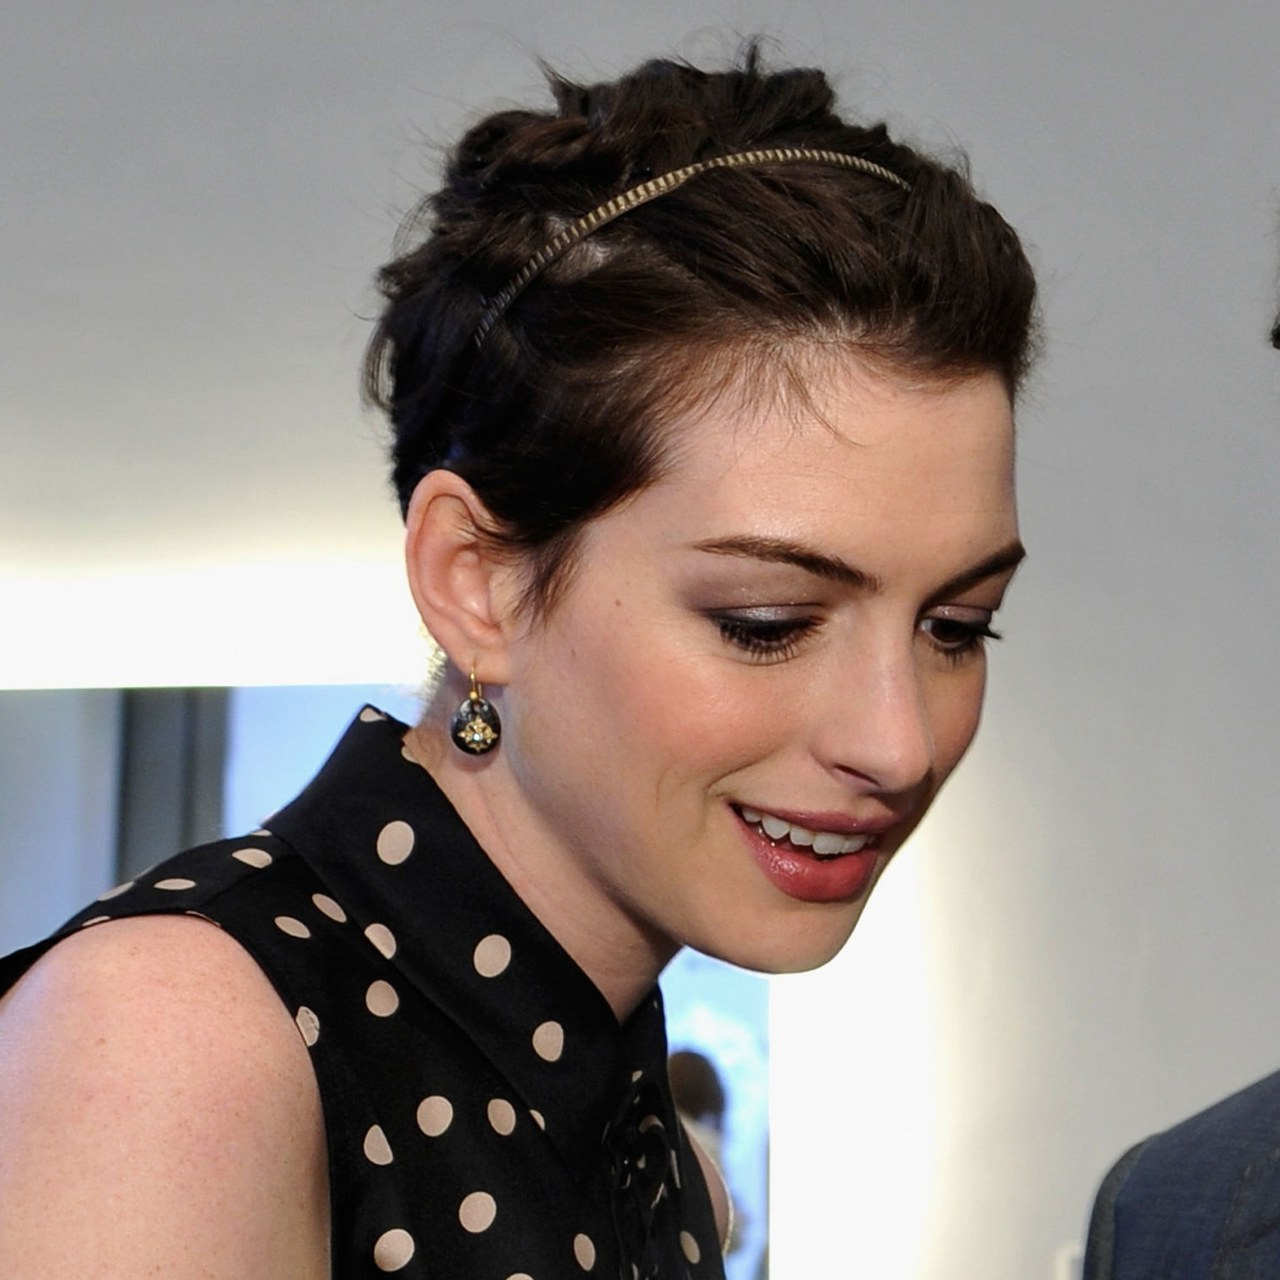 Anne Hathaway Uses A Headband To Create A Cute Hairstyle For Her In Short Hairstyles With Headbands (View 9 of 25)